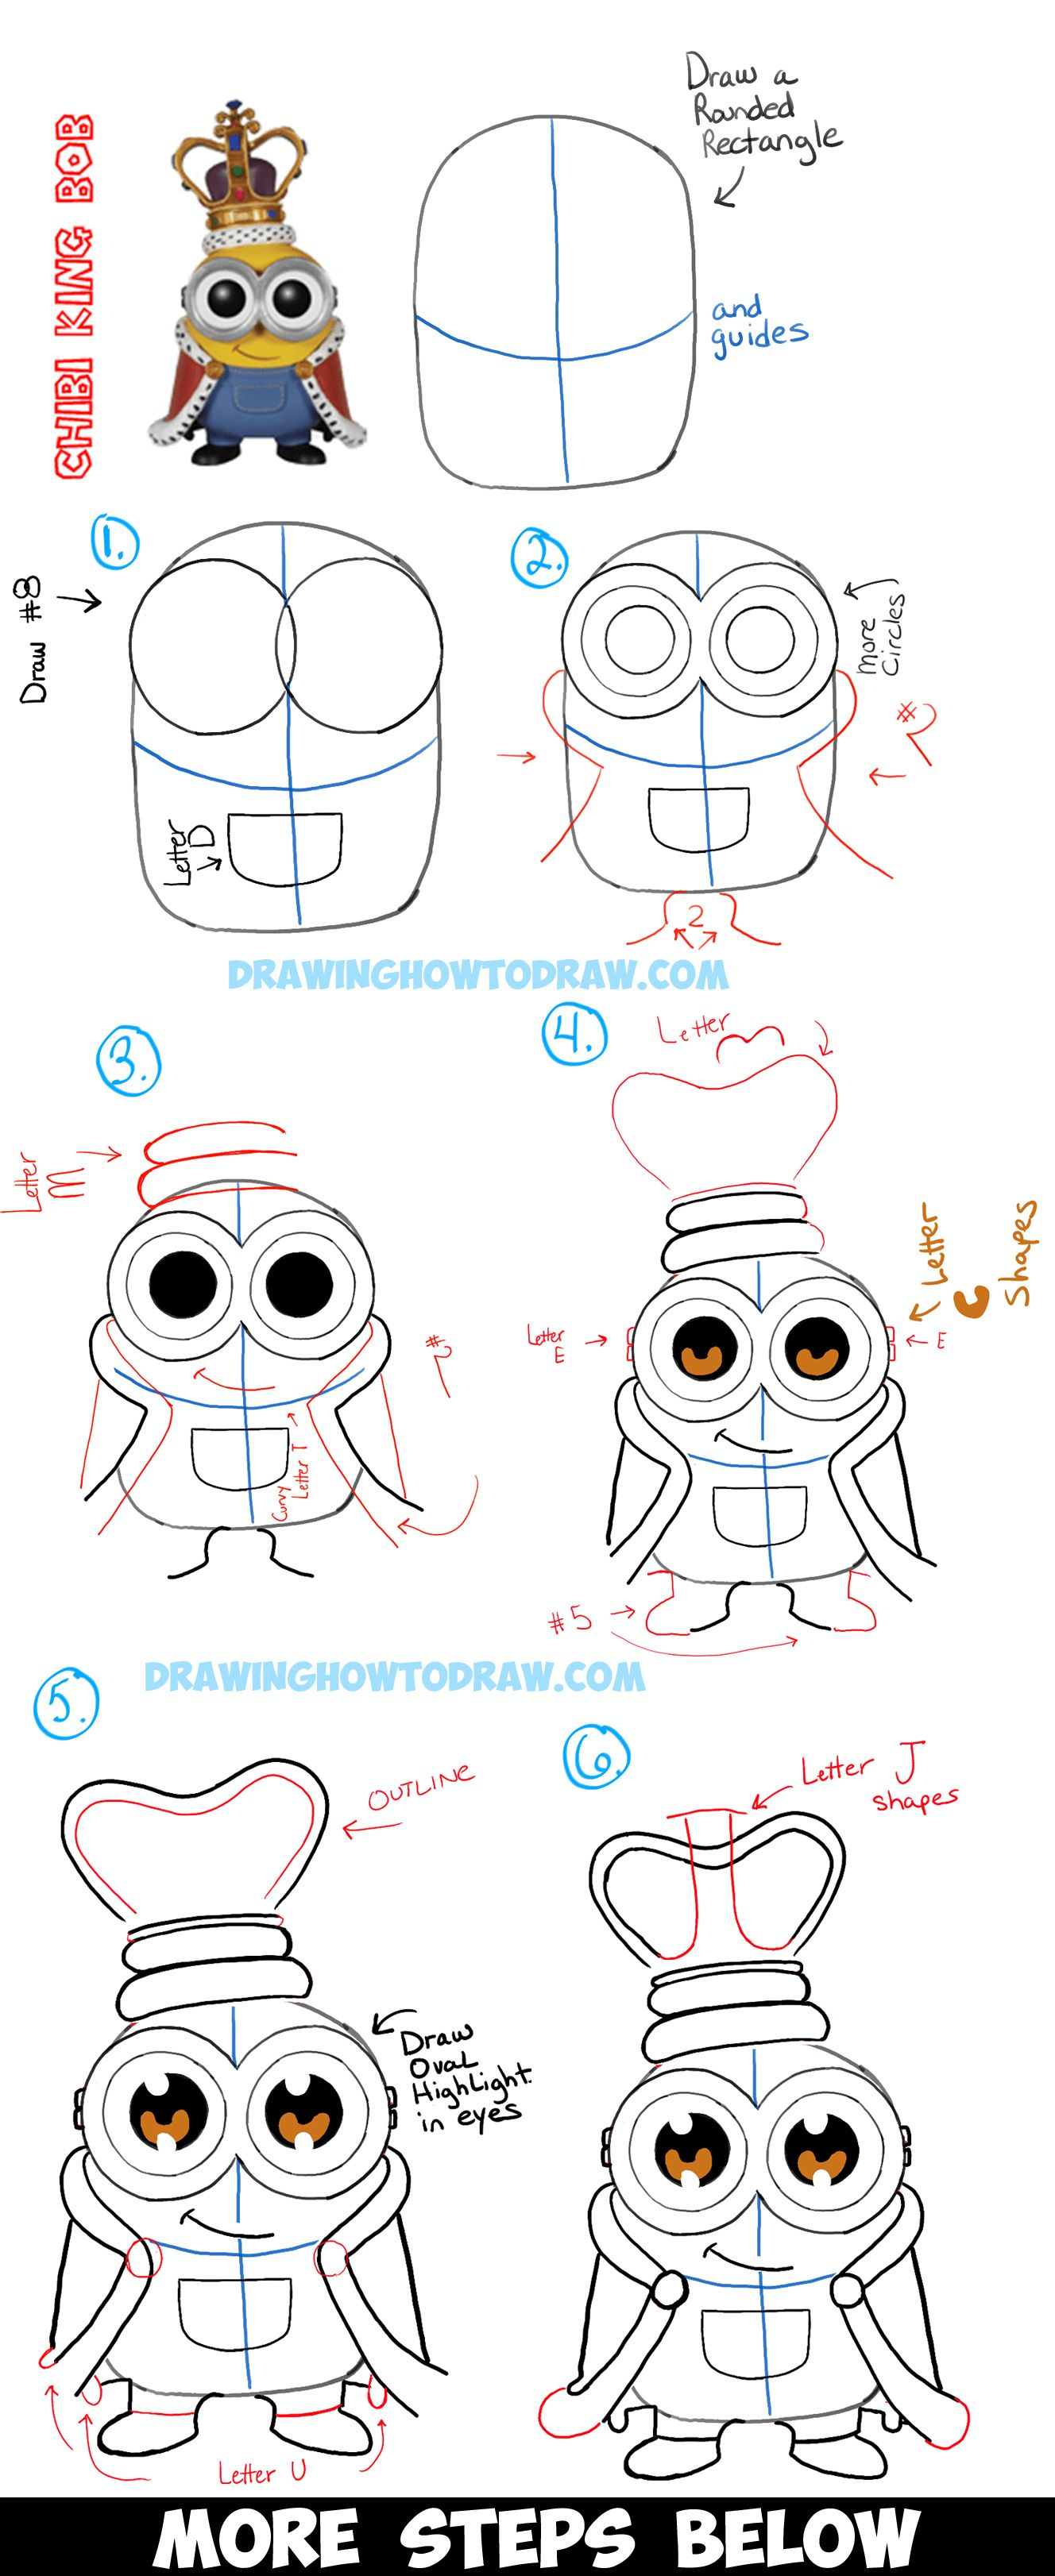 How To Draw Cute Chibi King Bob From The Minions Movie With Easy Tutorial How To Draw Step By Step Drawing Tutorials Cute Drawings Minion Drawing Easy Disney Drawings